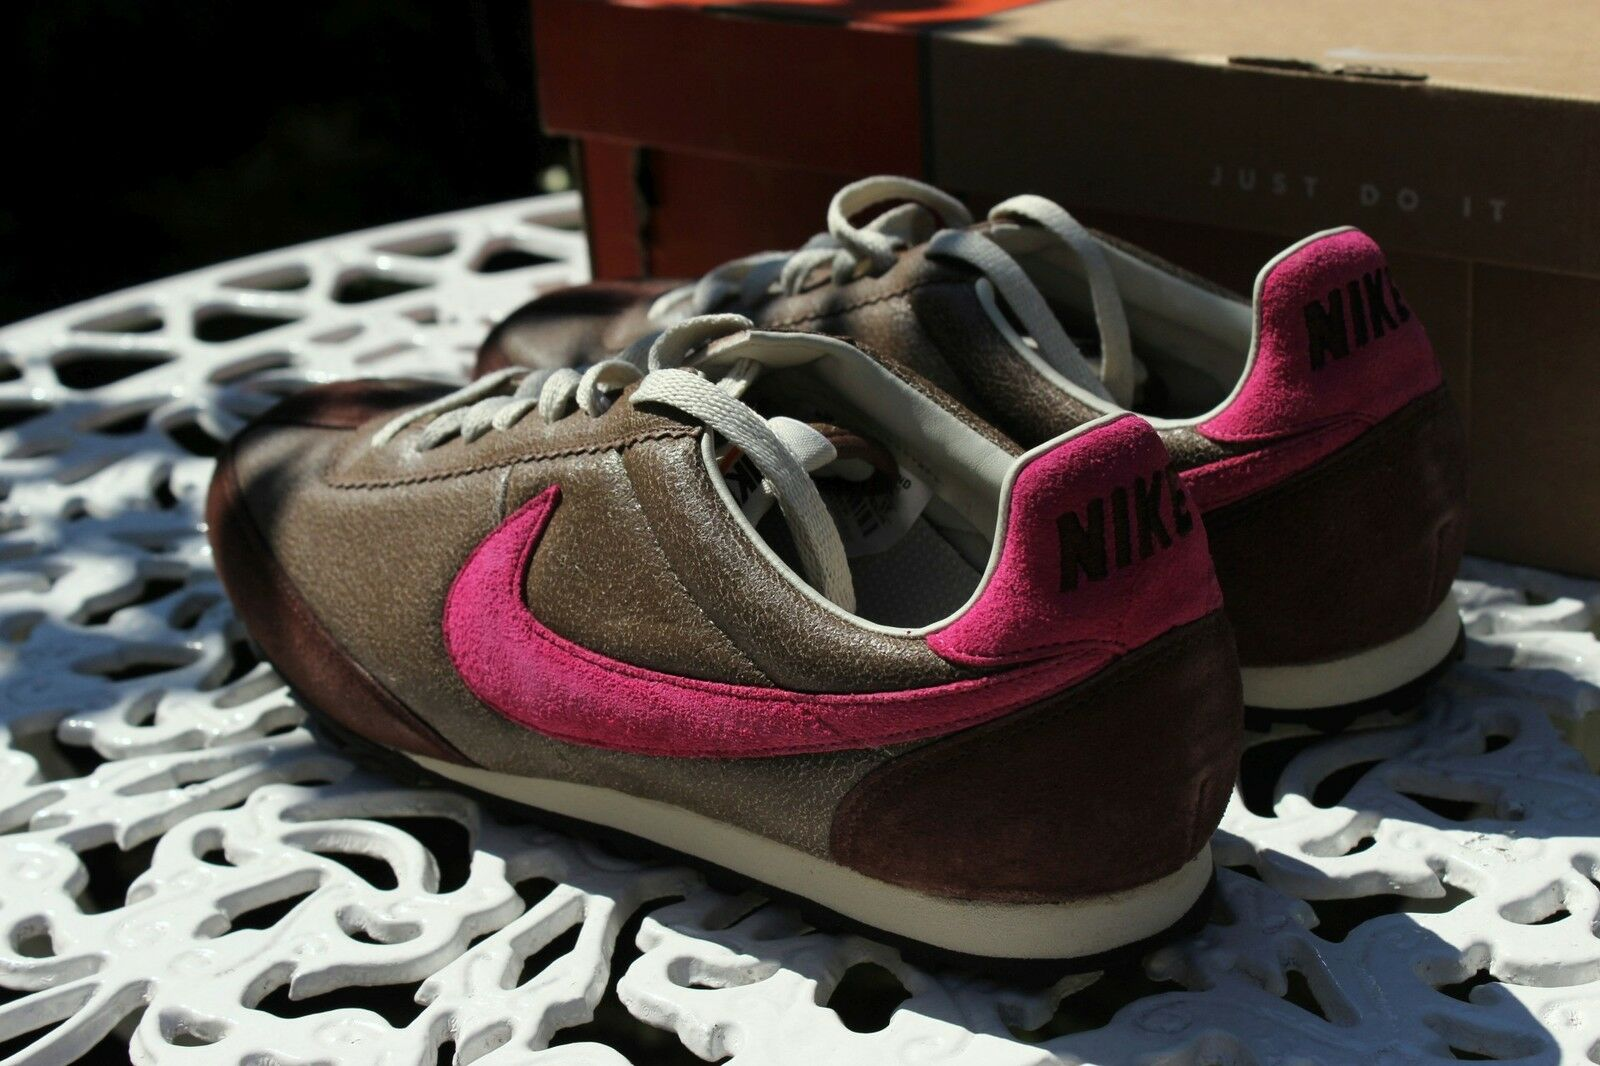 HTF RARE Nike Oregon Waffle Vintage Leather UK8 EU42.5 US9 27CM Bison PunchChoc.